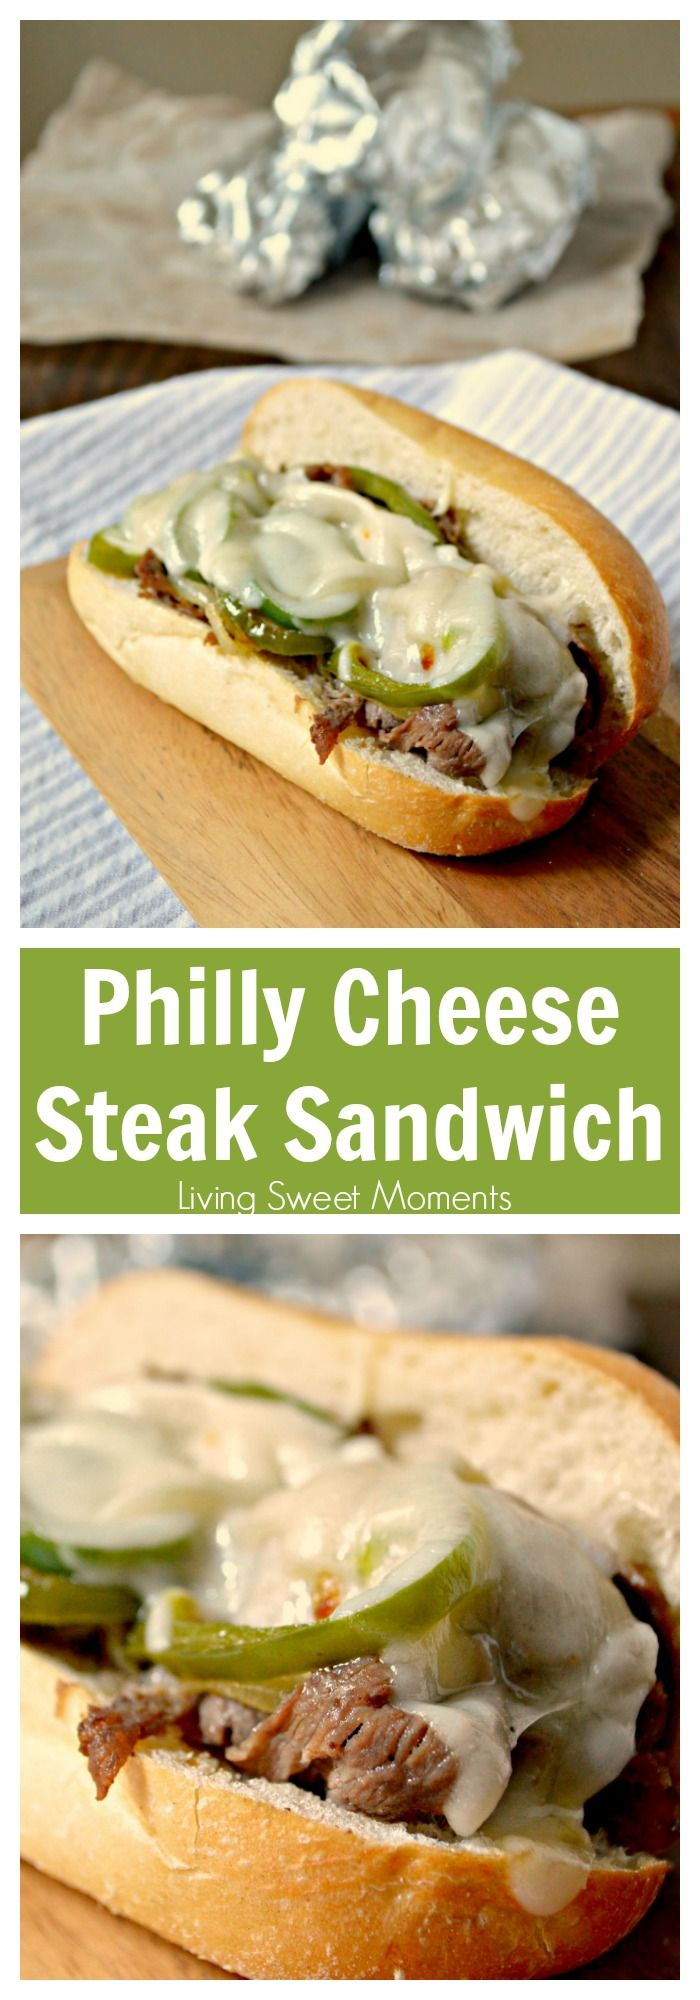 Easy Philly Cheese Steak Sandwich Recipe  - this easy quick weeknight dinner idea is made in no time and has so much flavor! Enjoy authentic flavor in one bite. More on livingsweetmoments.com